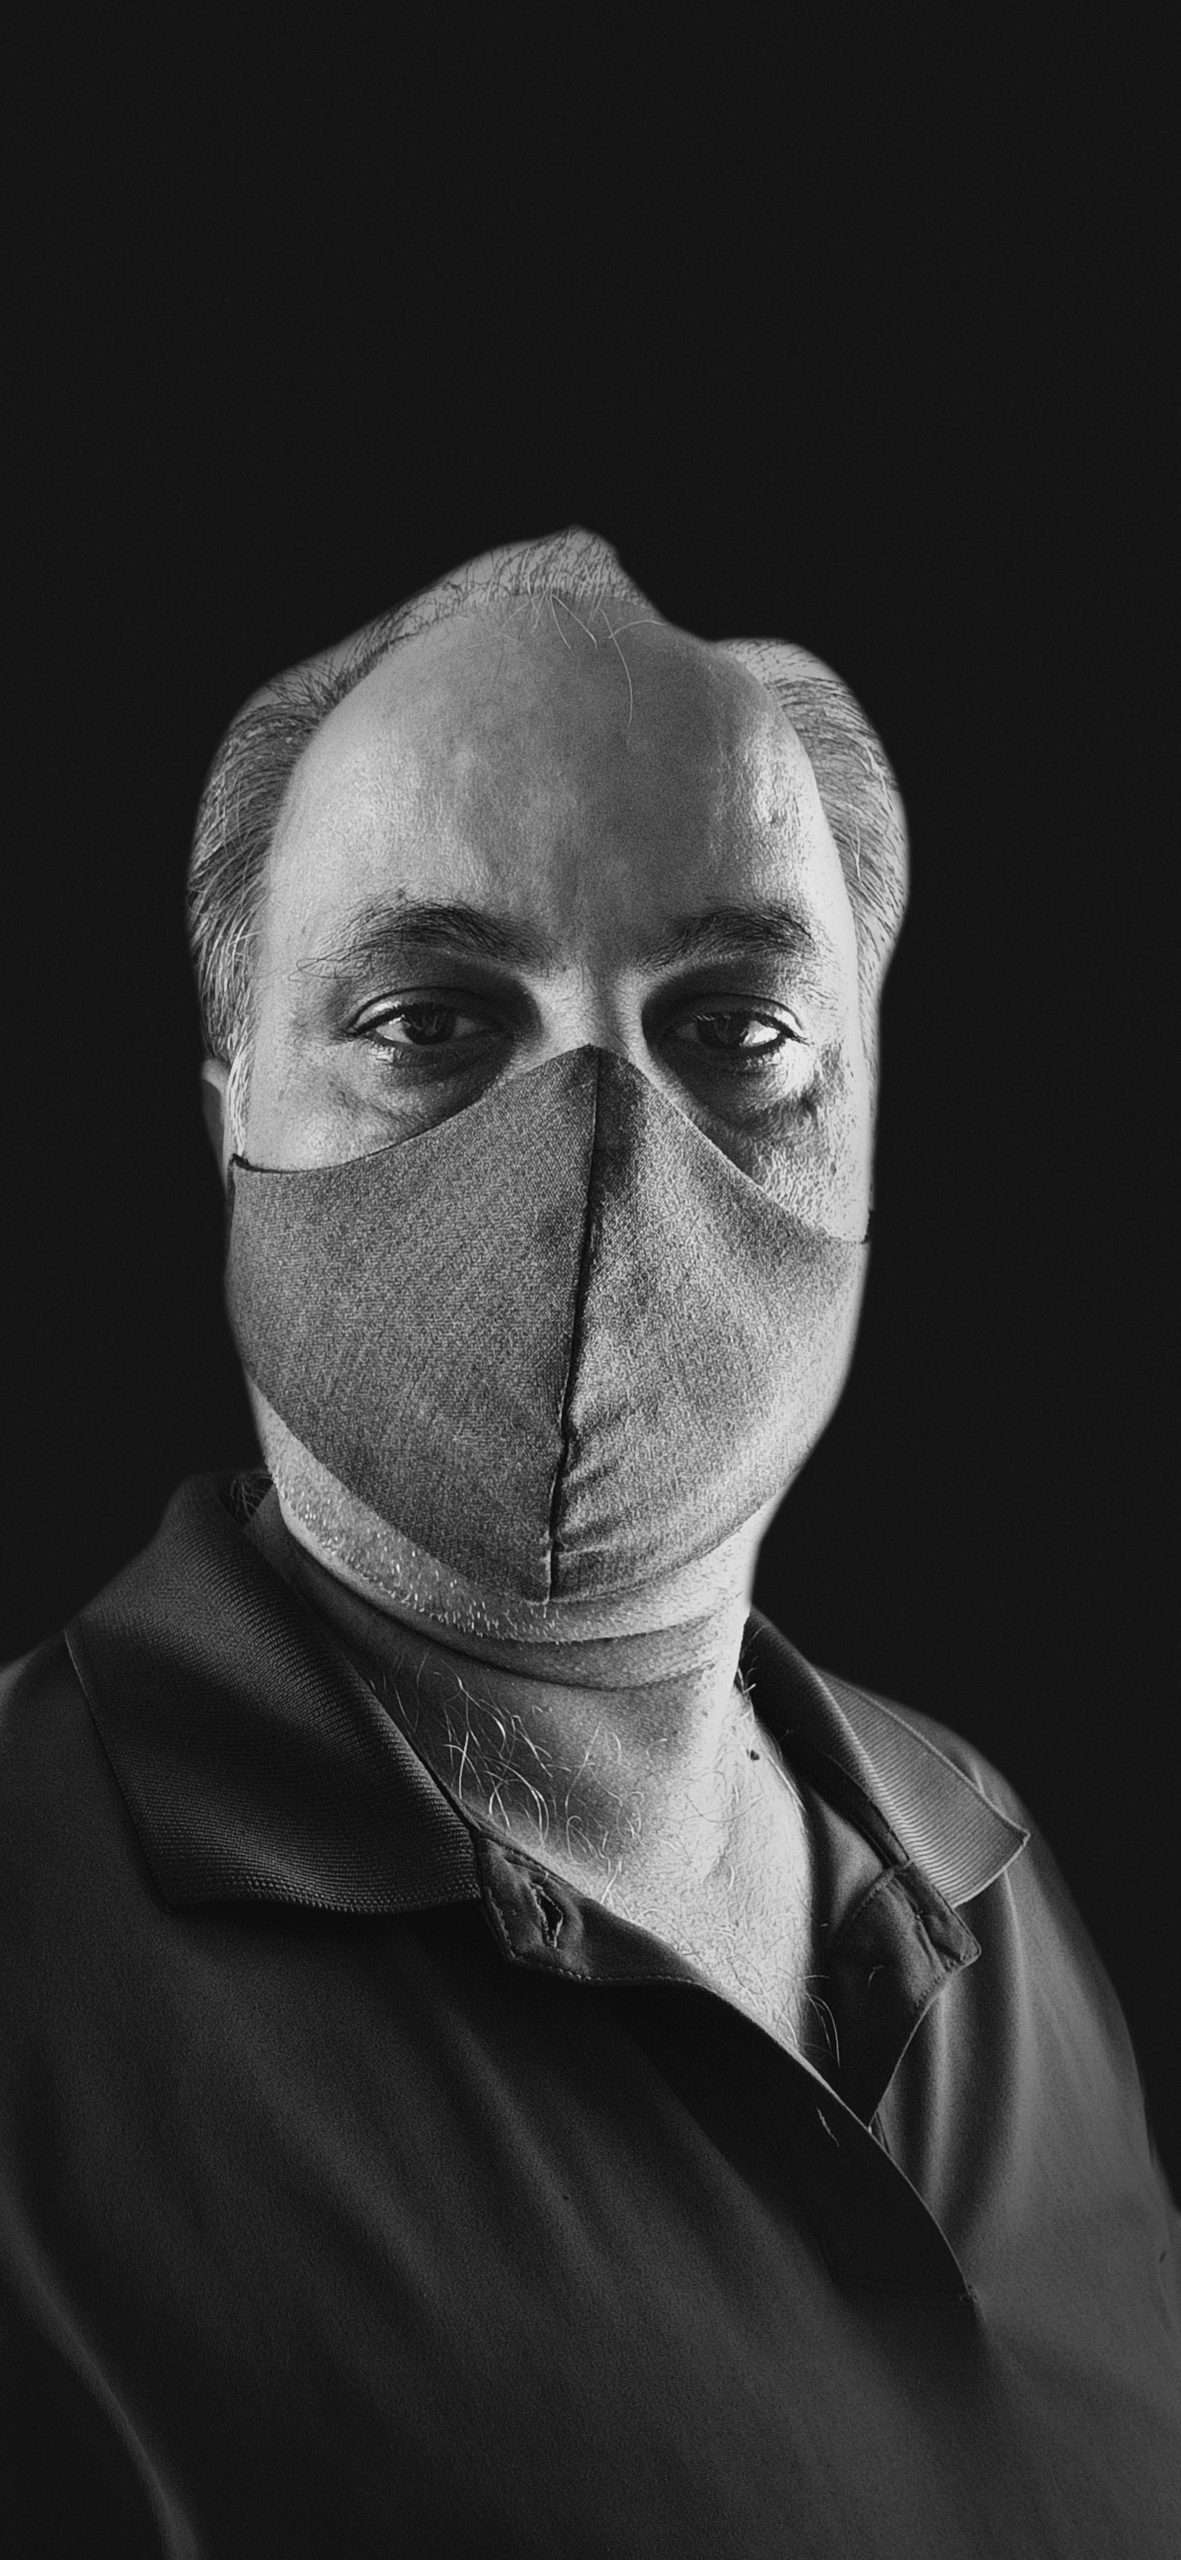 A man with face cover